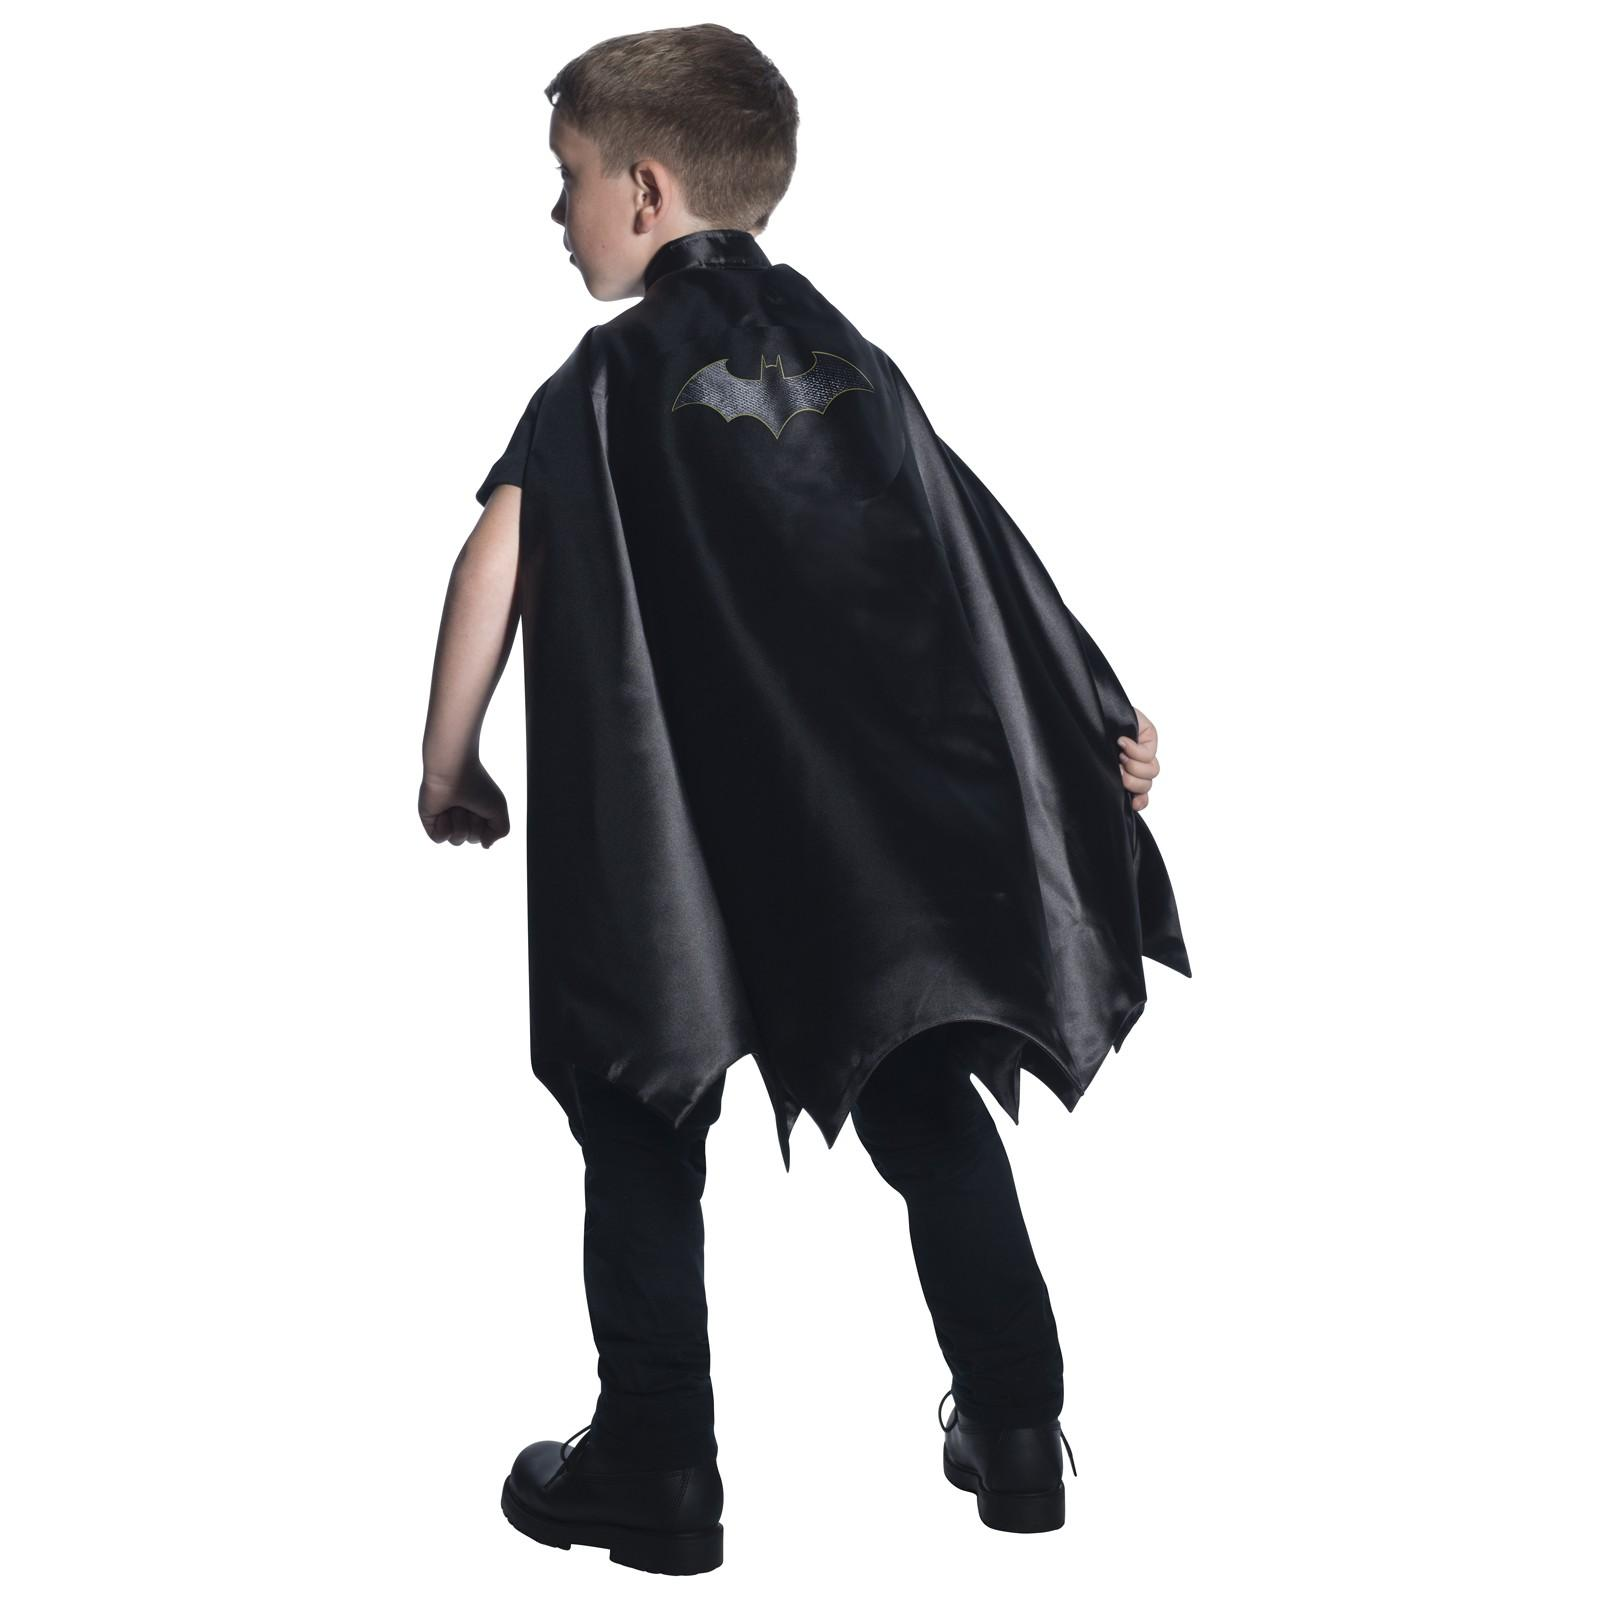 Deluxe Batman Cape For Kids - One-Size